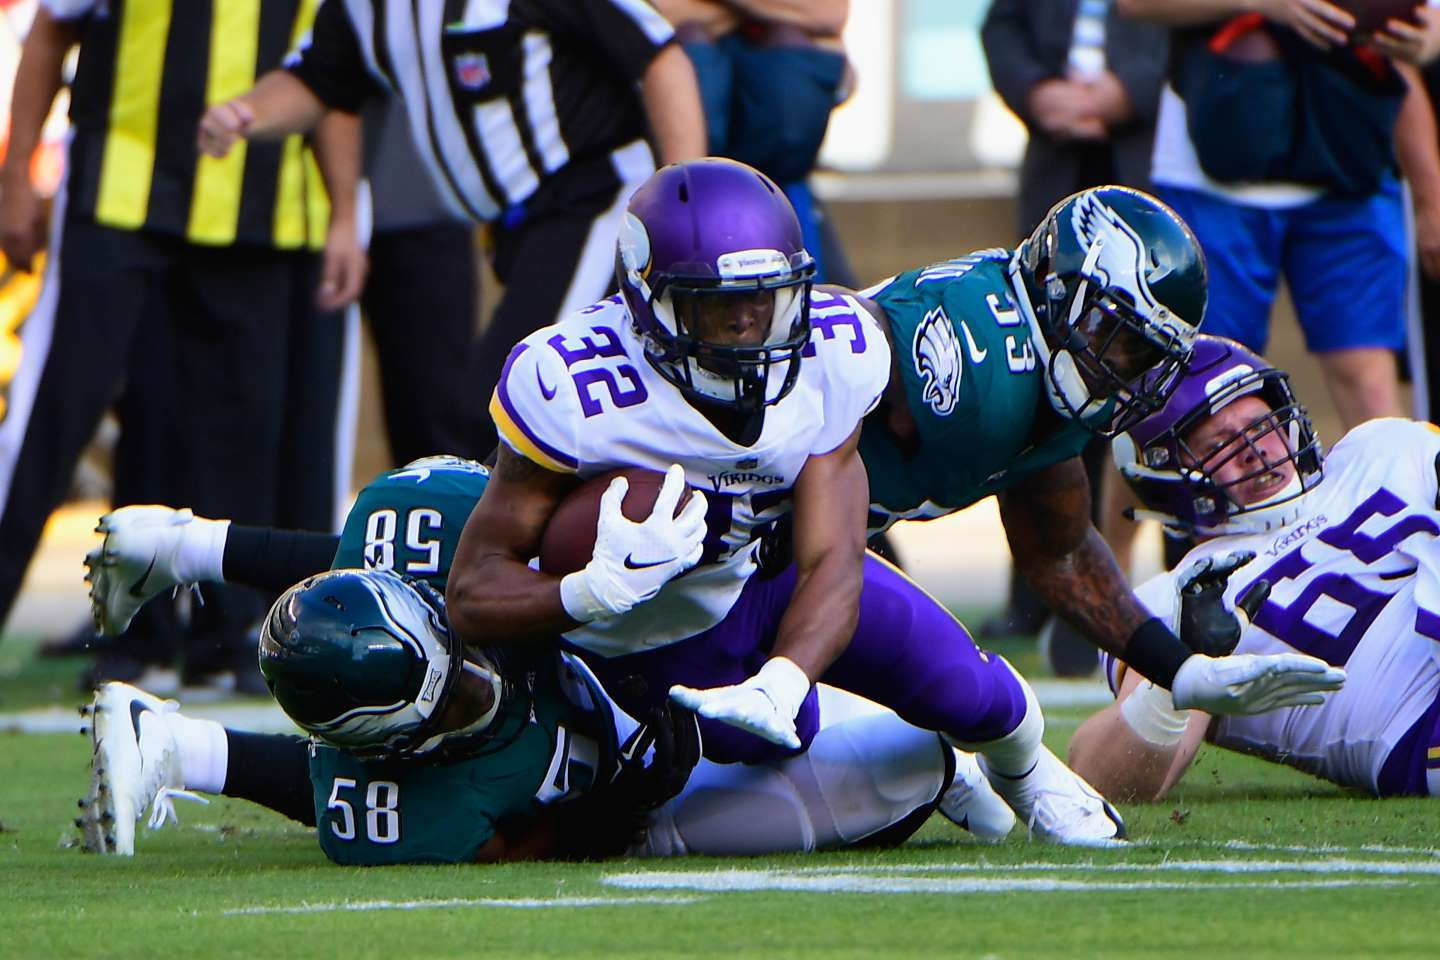 Vikings running back Roc Thomas suspended by NFL